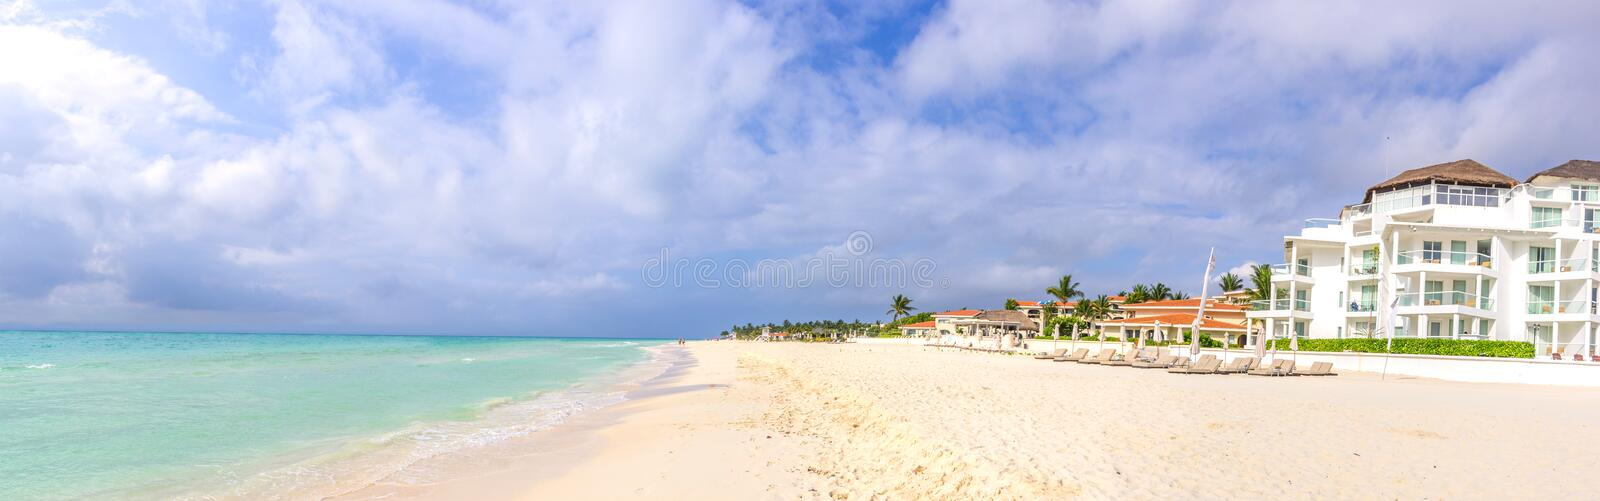 Playa del Carmen. Yucatan - Mexico stock images